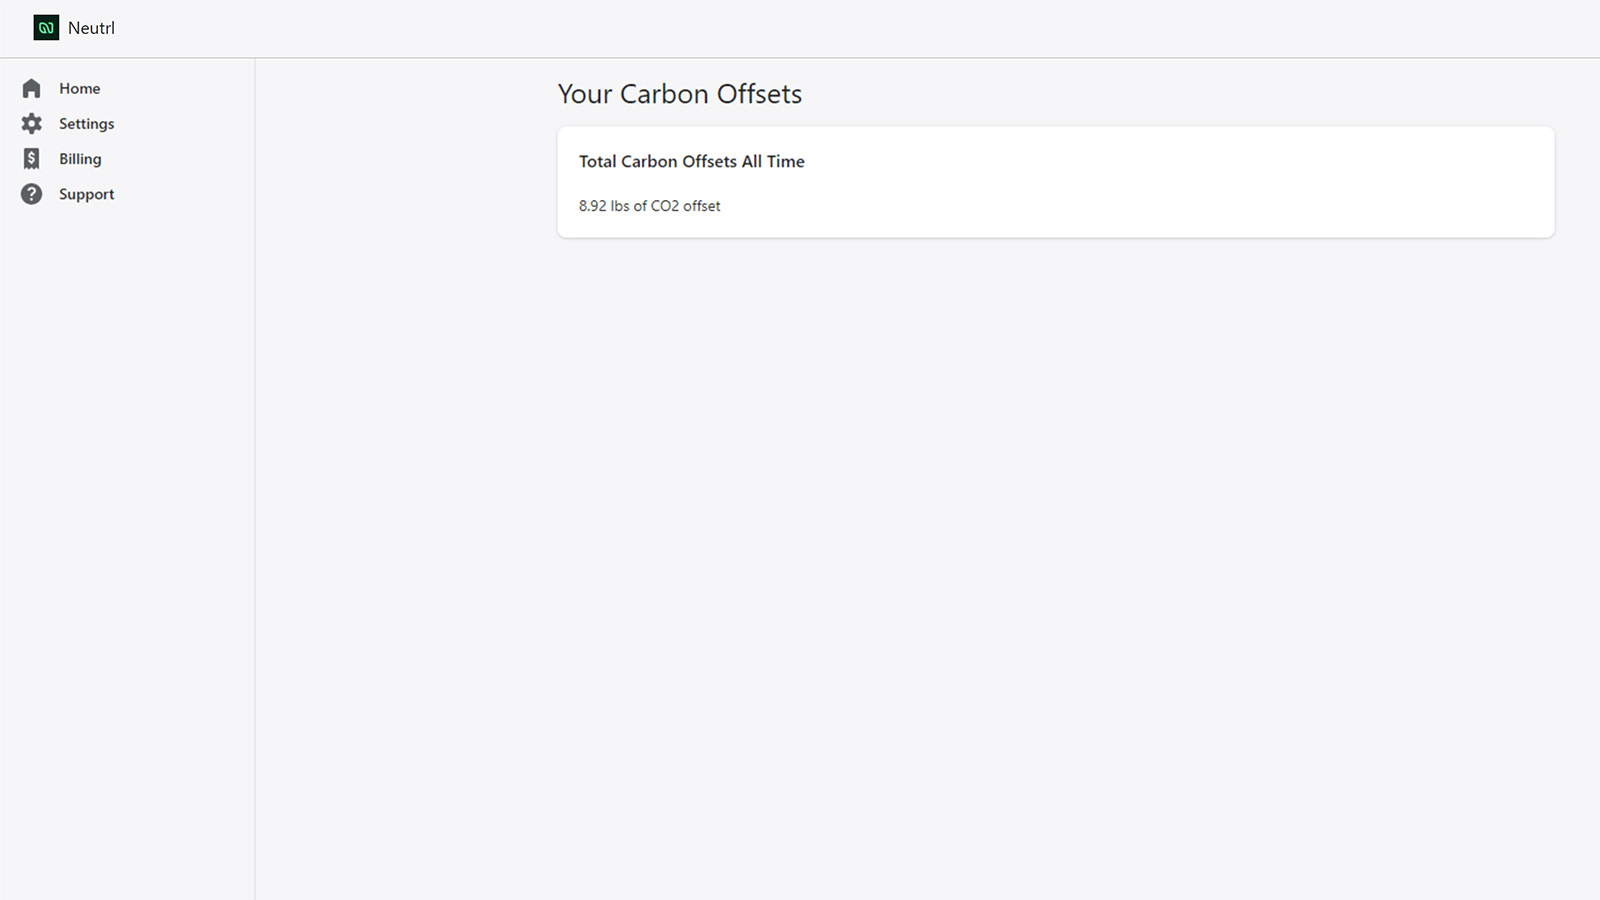 App home screen displaying total carbon offsets generated.